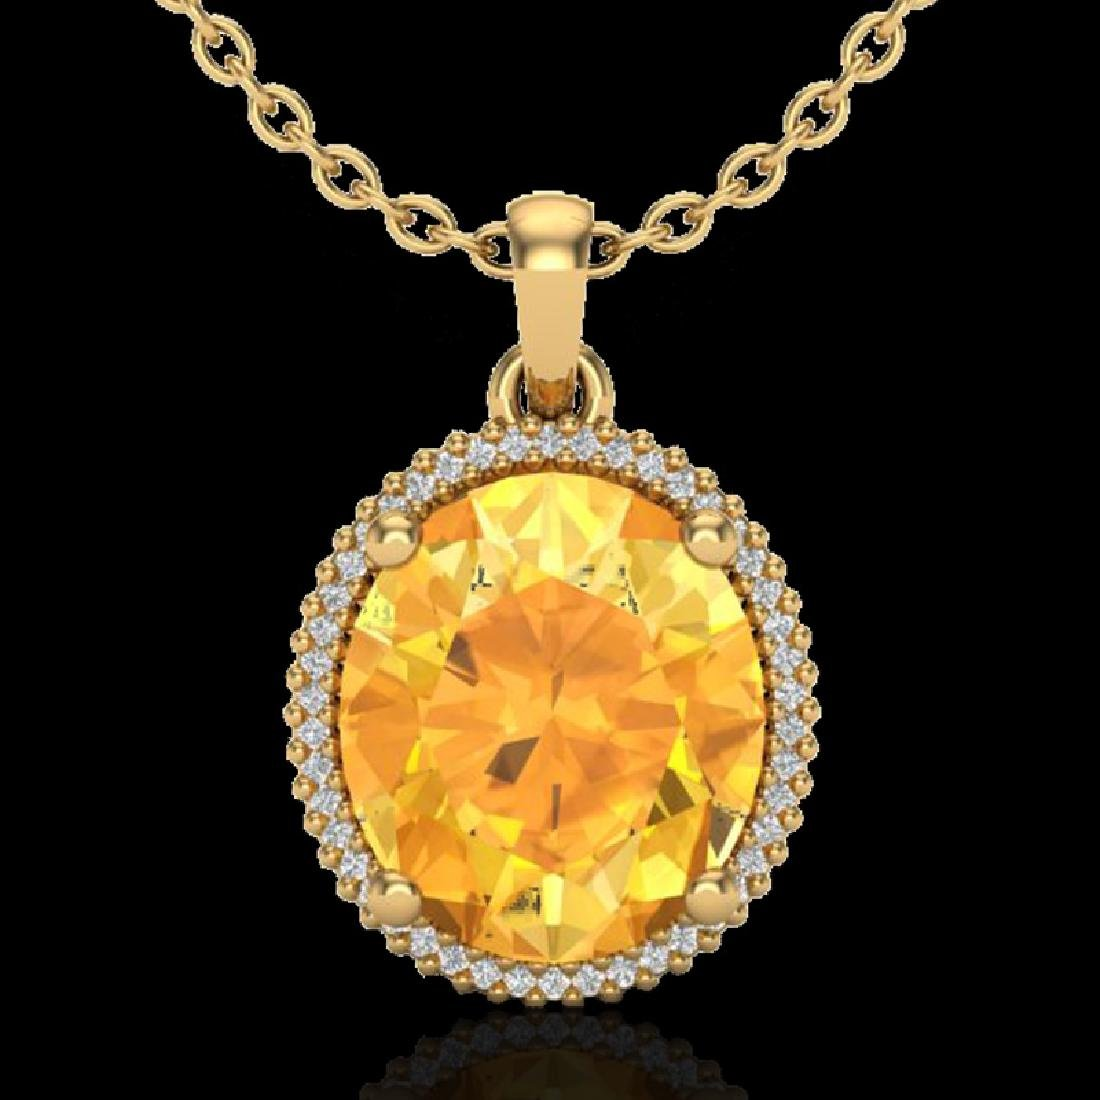 10 CTW Citrine & Micro Pave VS/SI Diamond Halo Necklace